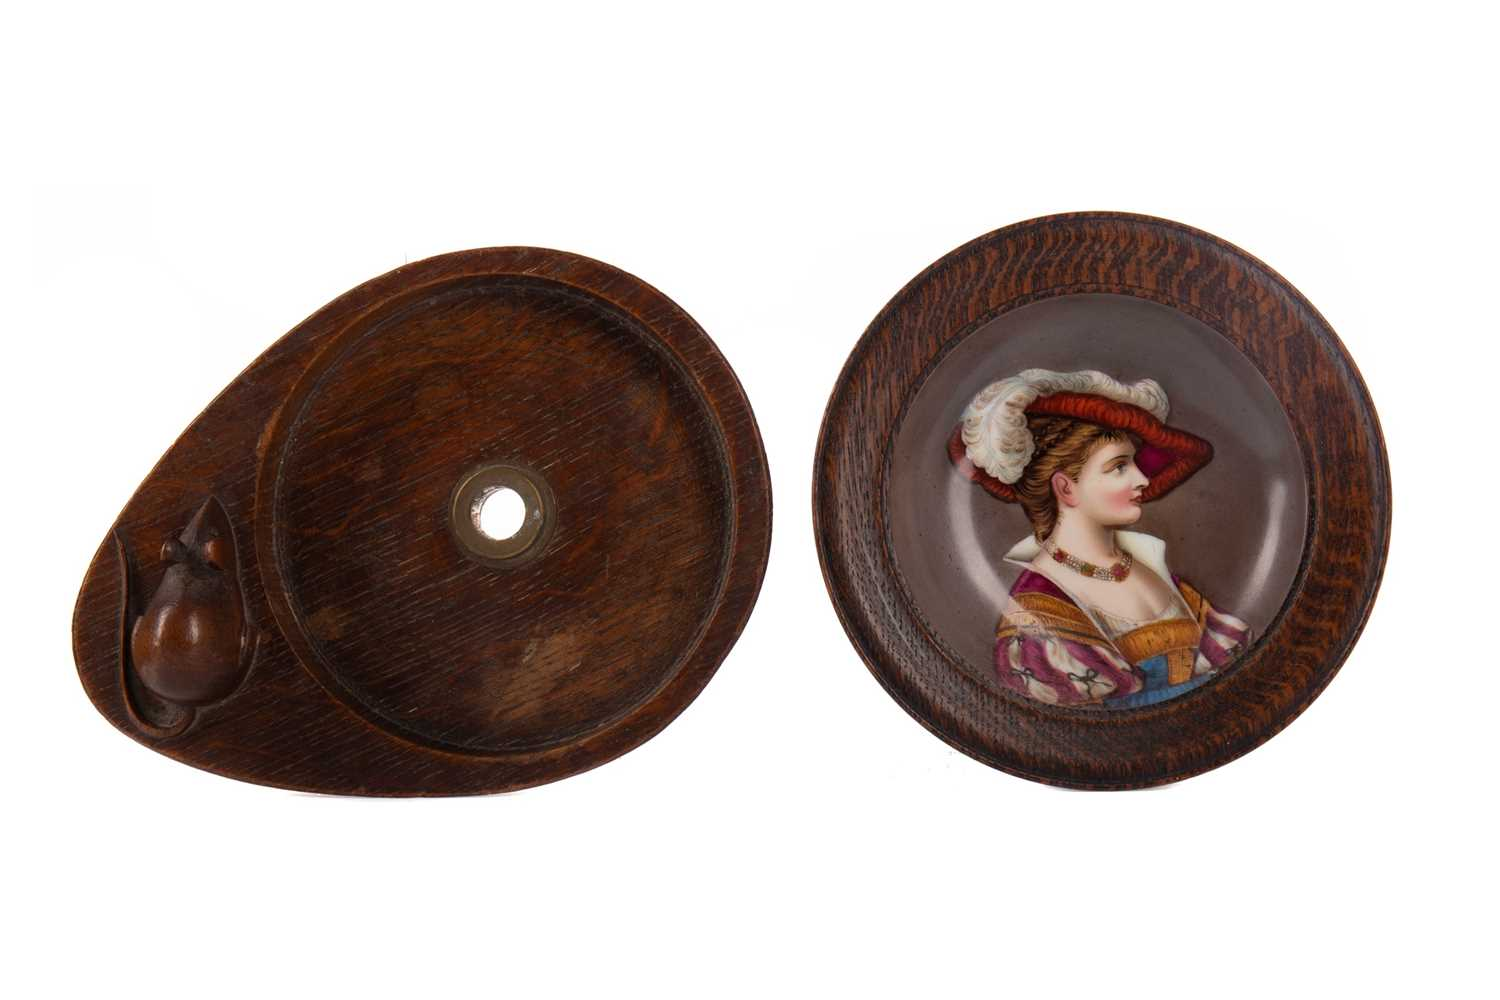 Lot 787 - AN OAK DISH IN THE STYLE OF MOUSEMAN